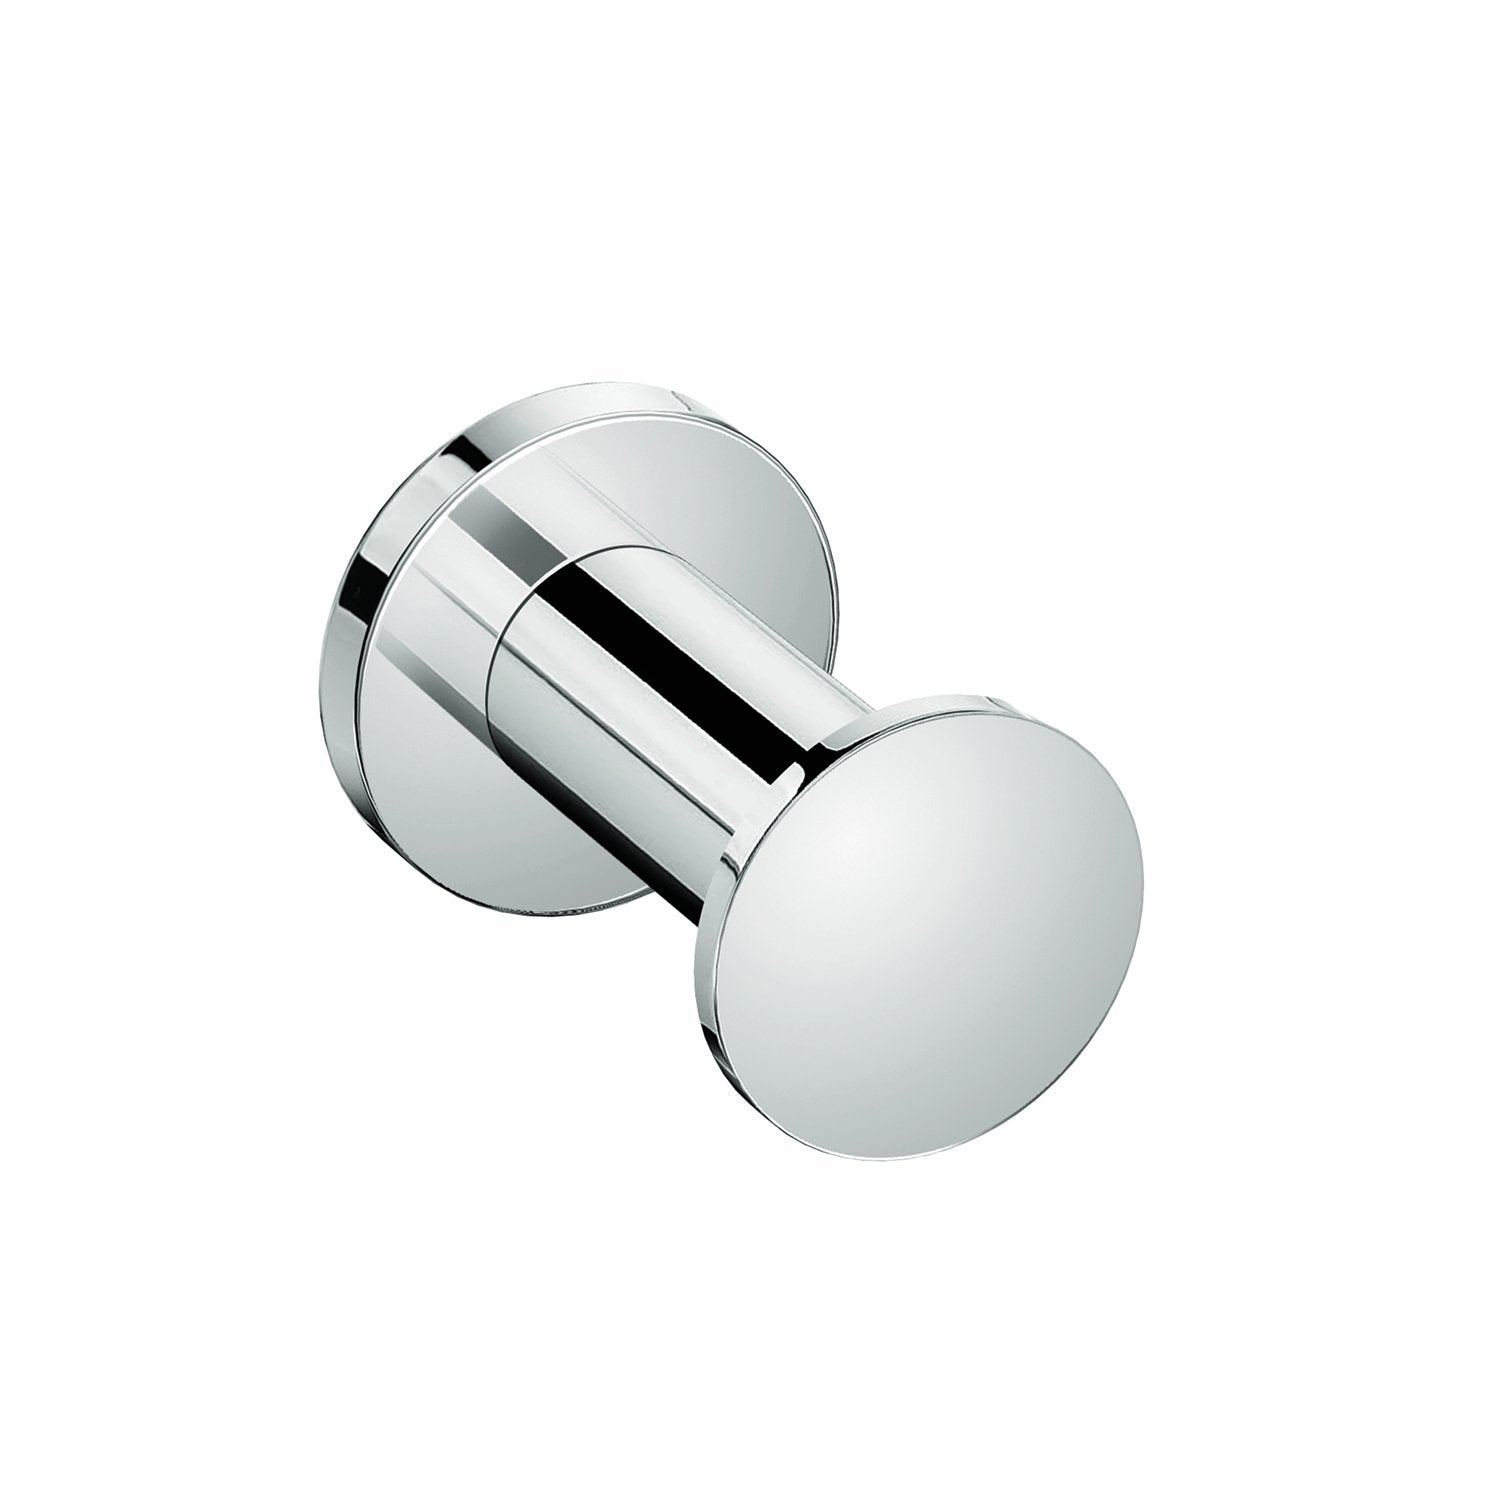 COSMIC Architect Single Bathroom Hook, Wall Mount, Brass Body, Chrome Finish, ?ò1-9/16 x 2 Inches (2050121)